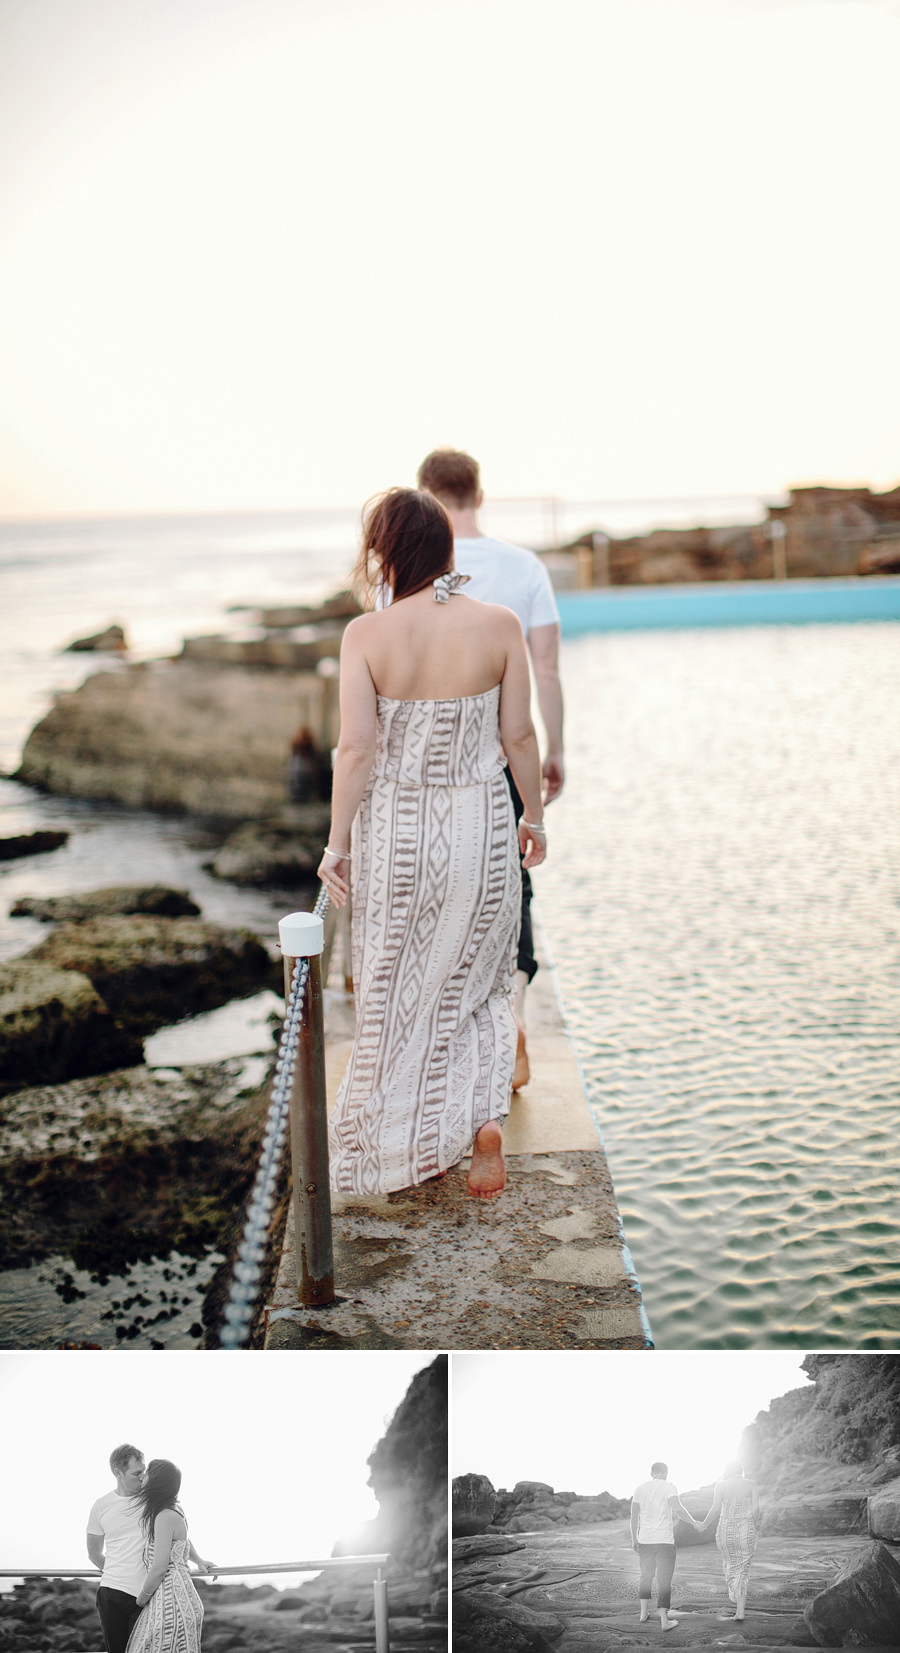 Palm Beach Engagement Photographers: Rock pool